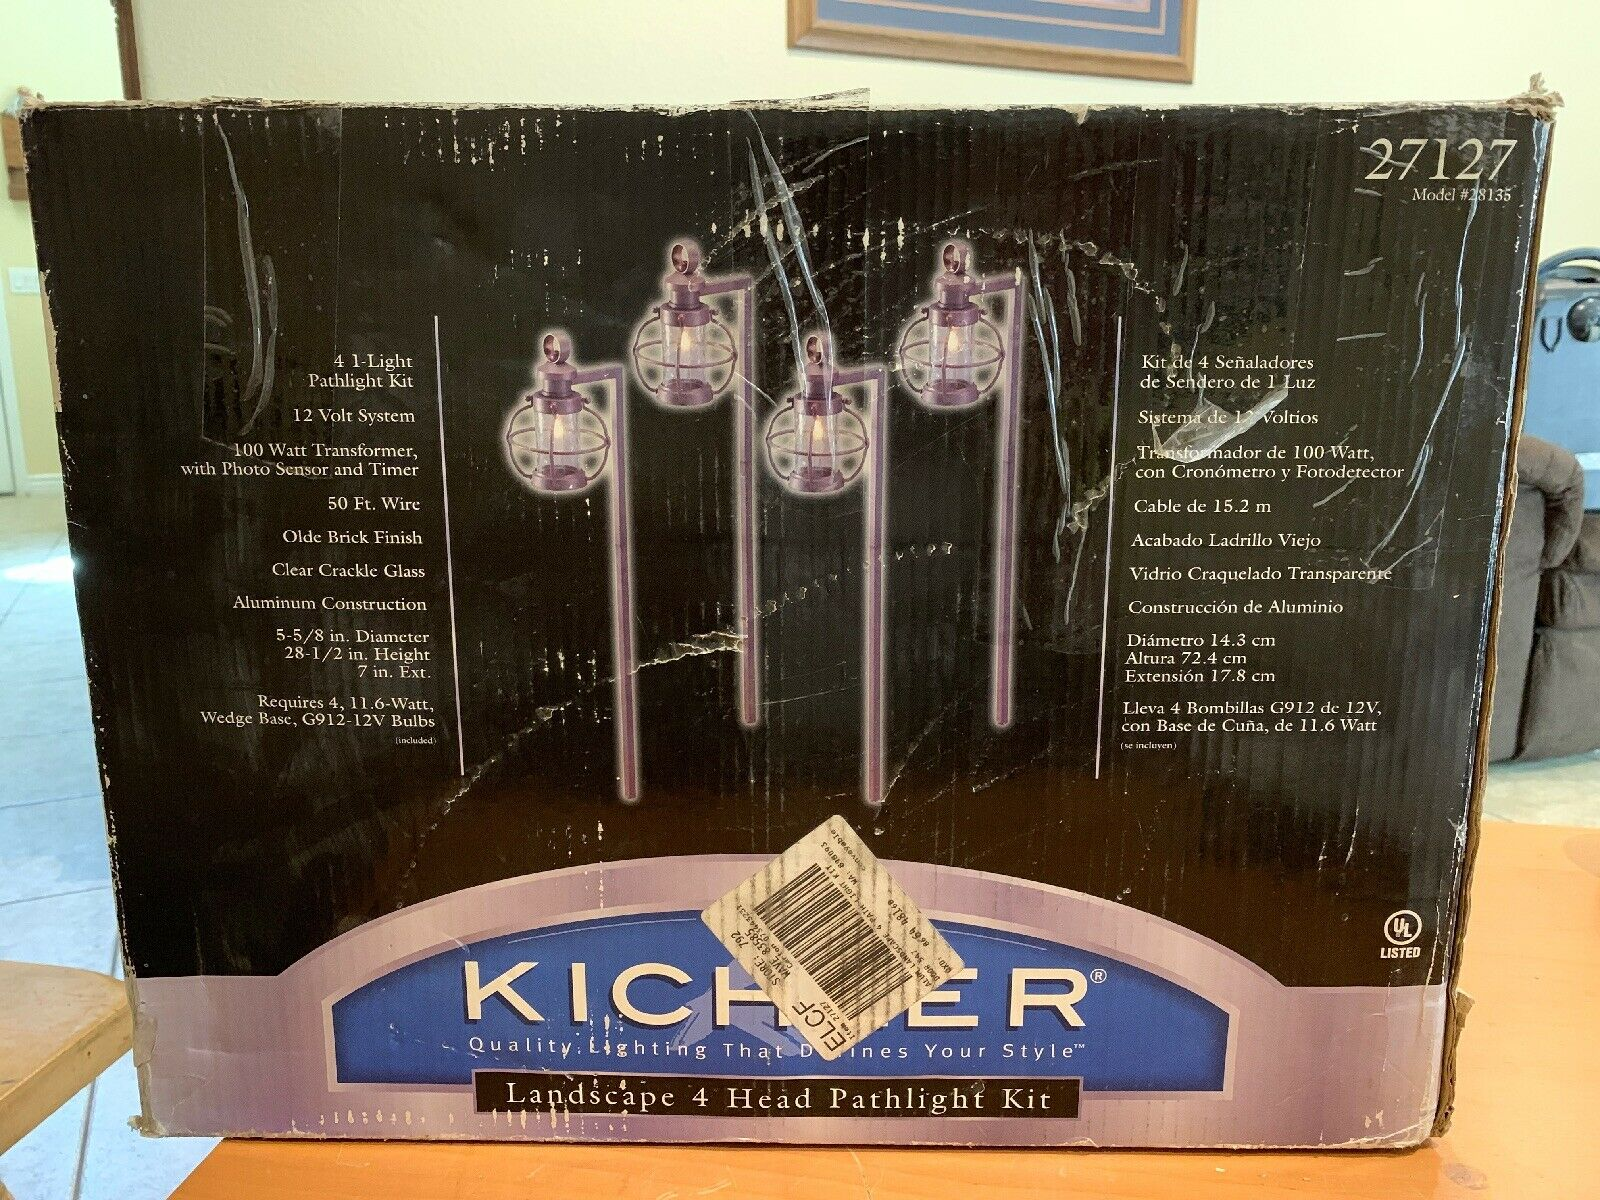 Kichler Lighting 4 Light Pathlight Kit 27127 Copper 28135